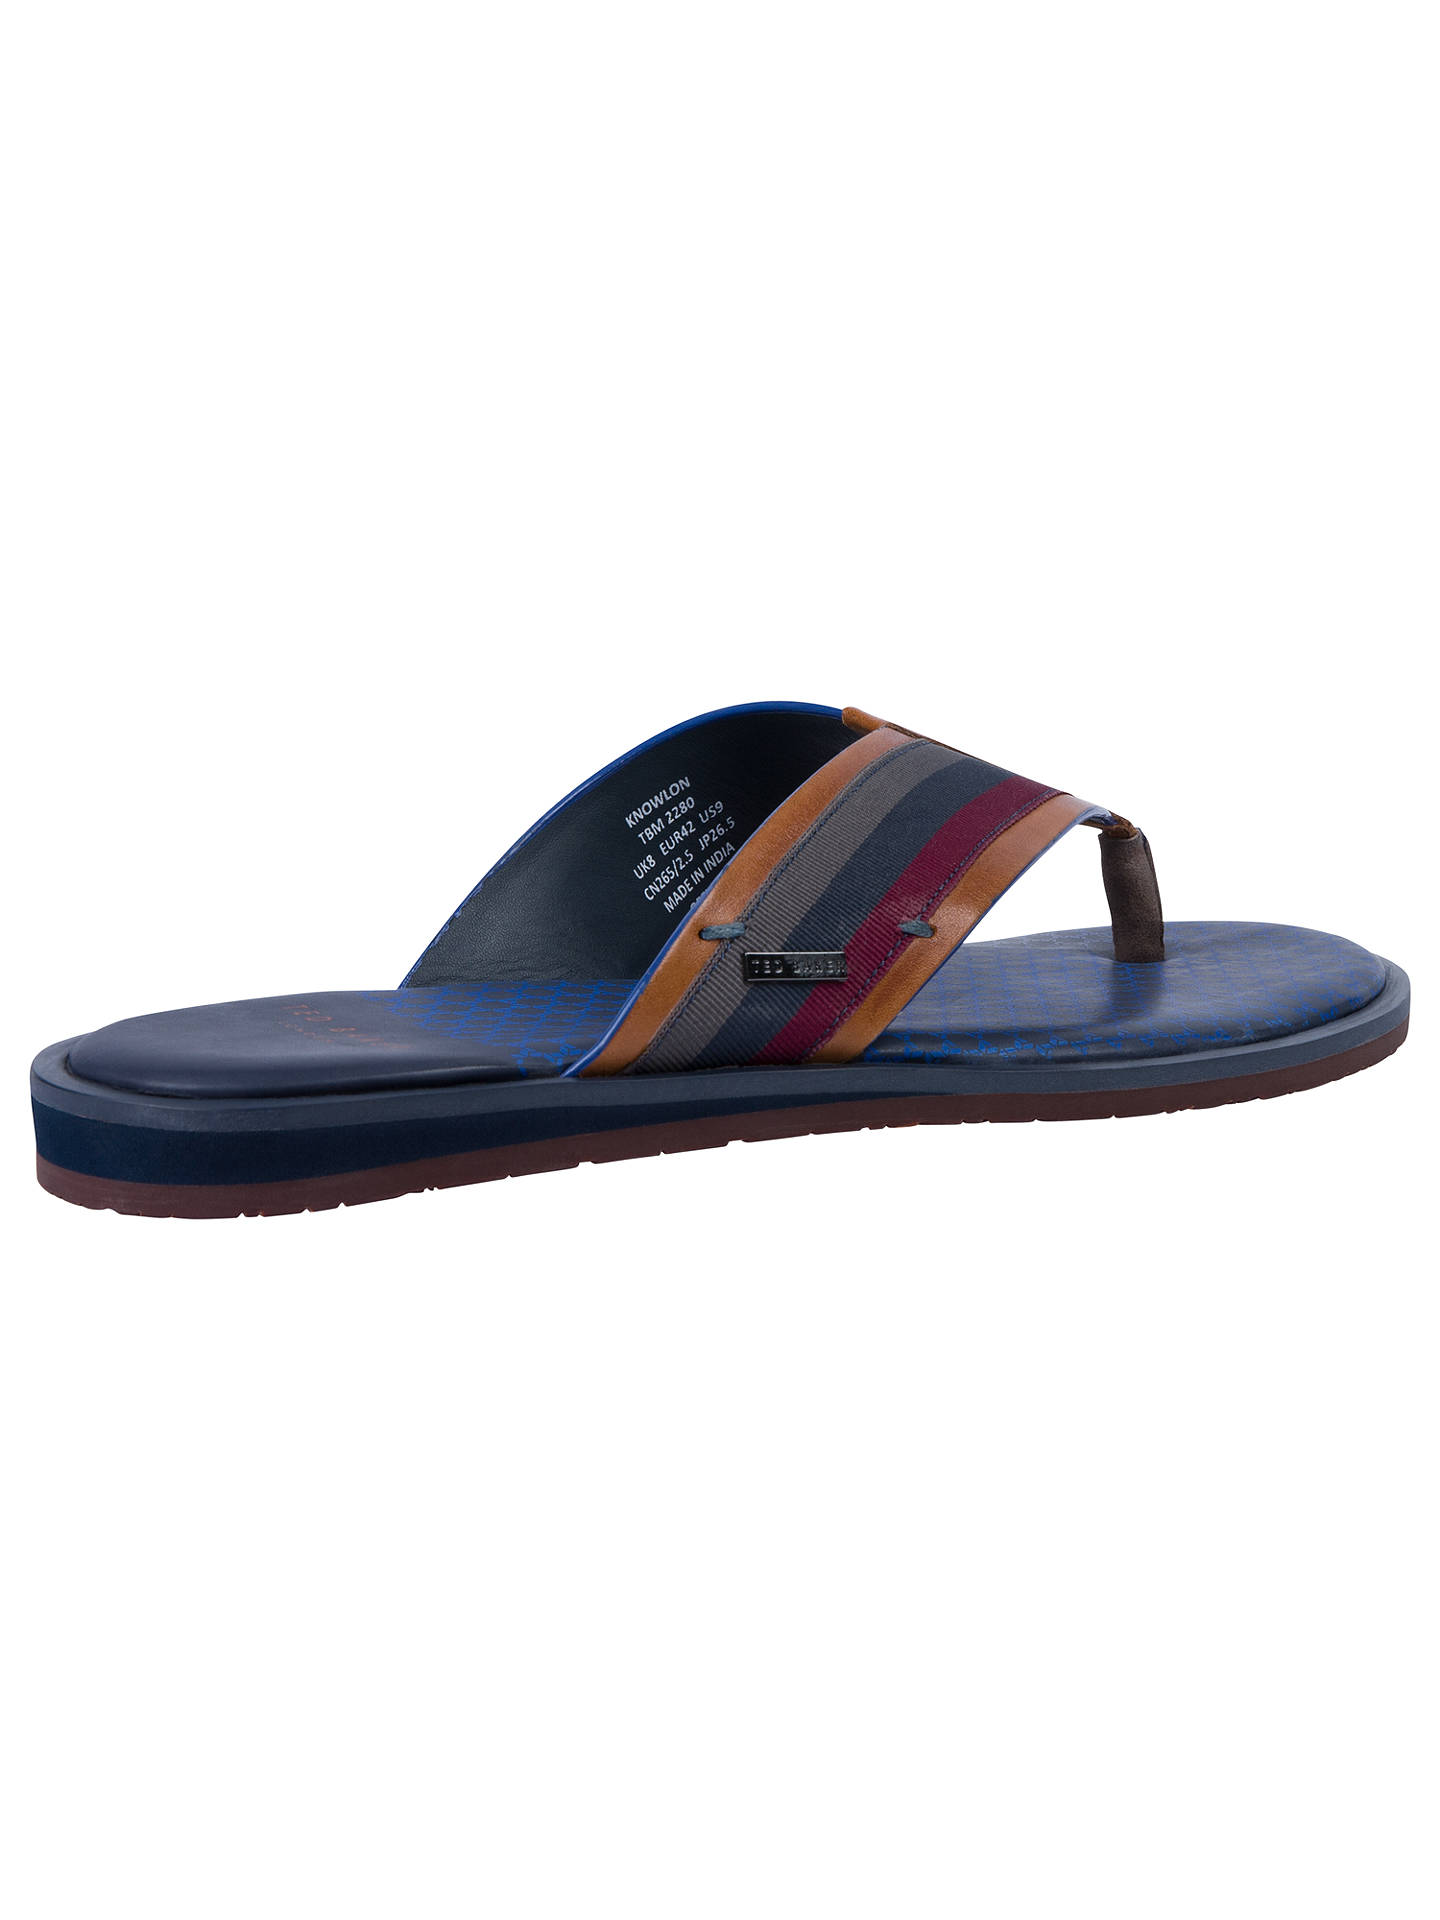 df8c00780dc3 Ted Baker Knowlun Toe Post Sandals at John Lewis   Partners